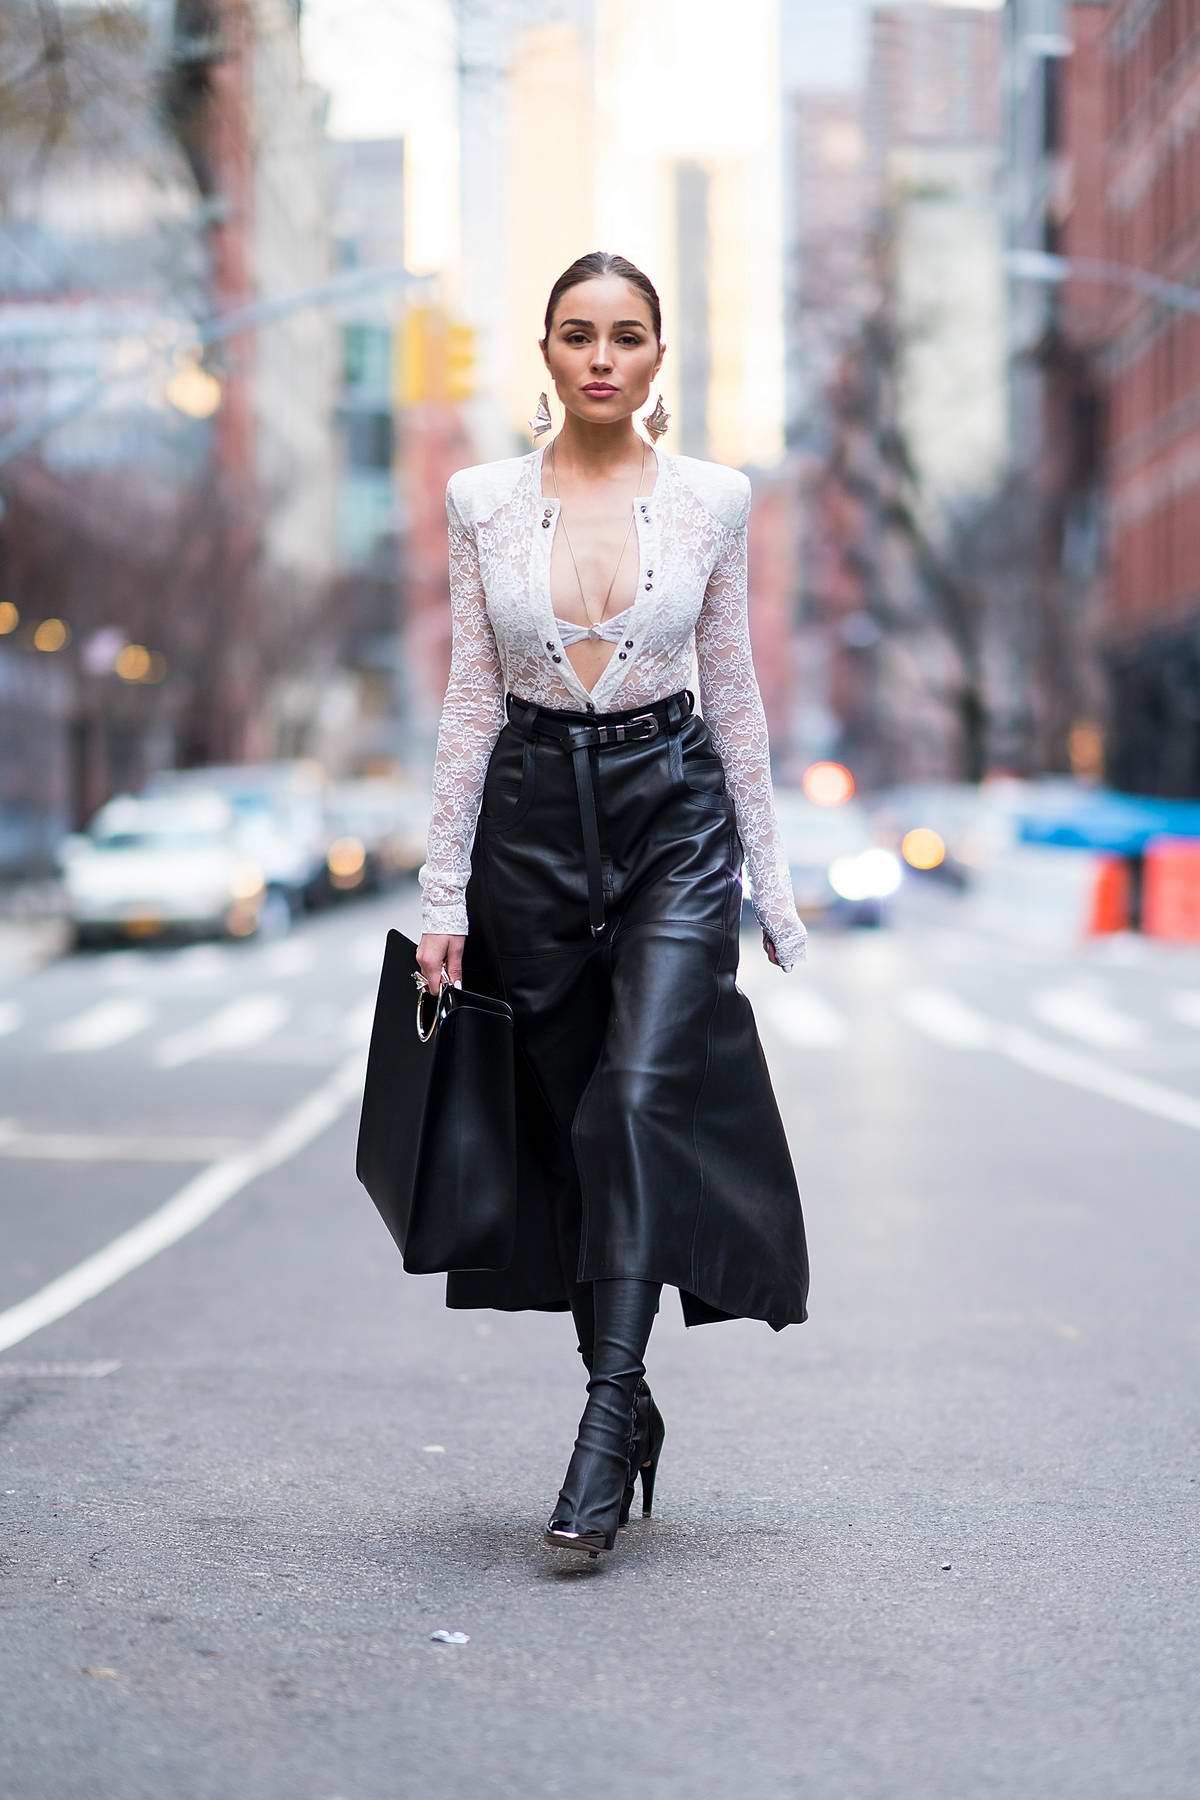 Olivia culpo is stylish soho in nyc - 2019 year